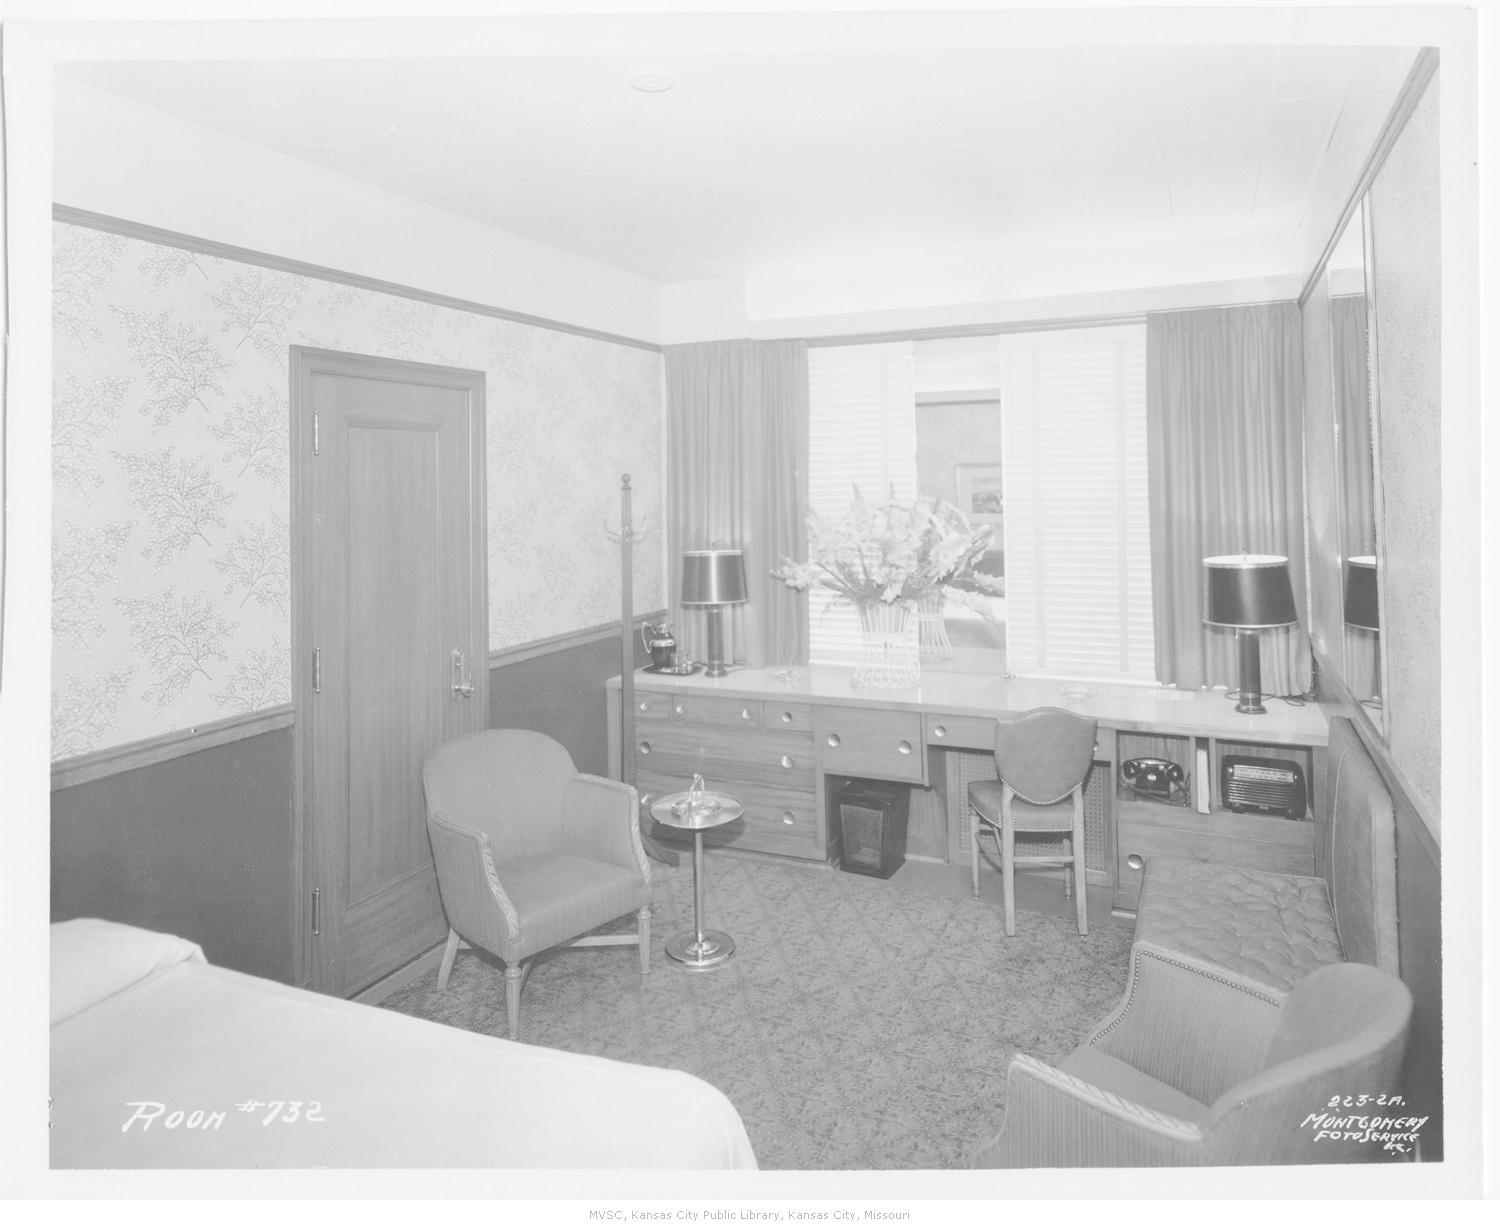 Standard hotel room in 1955. Image courtesy of the Missouri Valley Special Collections.